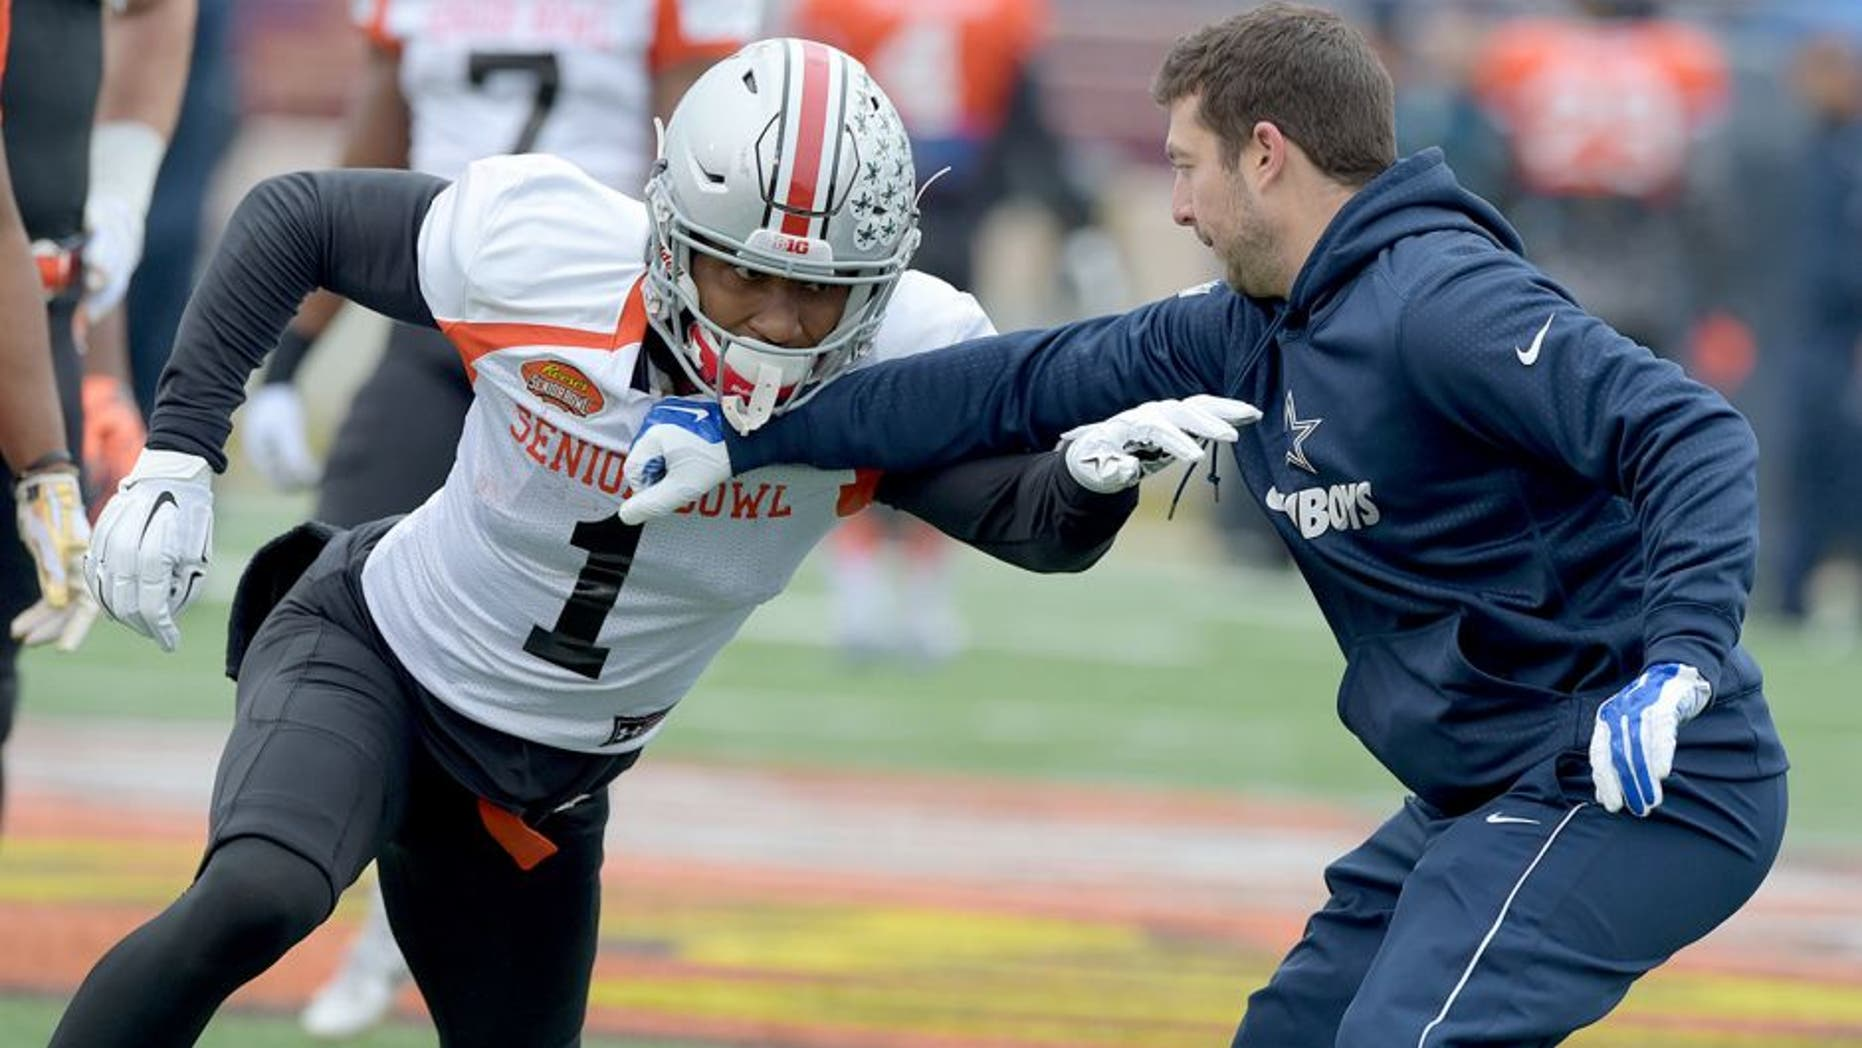 Jan 27, 2016; Mobile, AL, USA; North squad wide receiver Braxton Miller of Ohio State (1) works against a Dallas Cowboys assistant coach on a drill during Senior Bowl practice at Ladd-Peebles Stadium. Mandatory Credit: Glenn Andrews-USA TODAY Sports